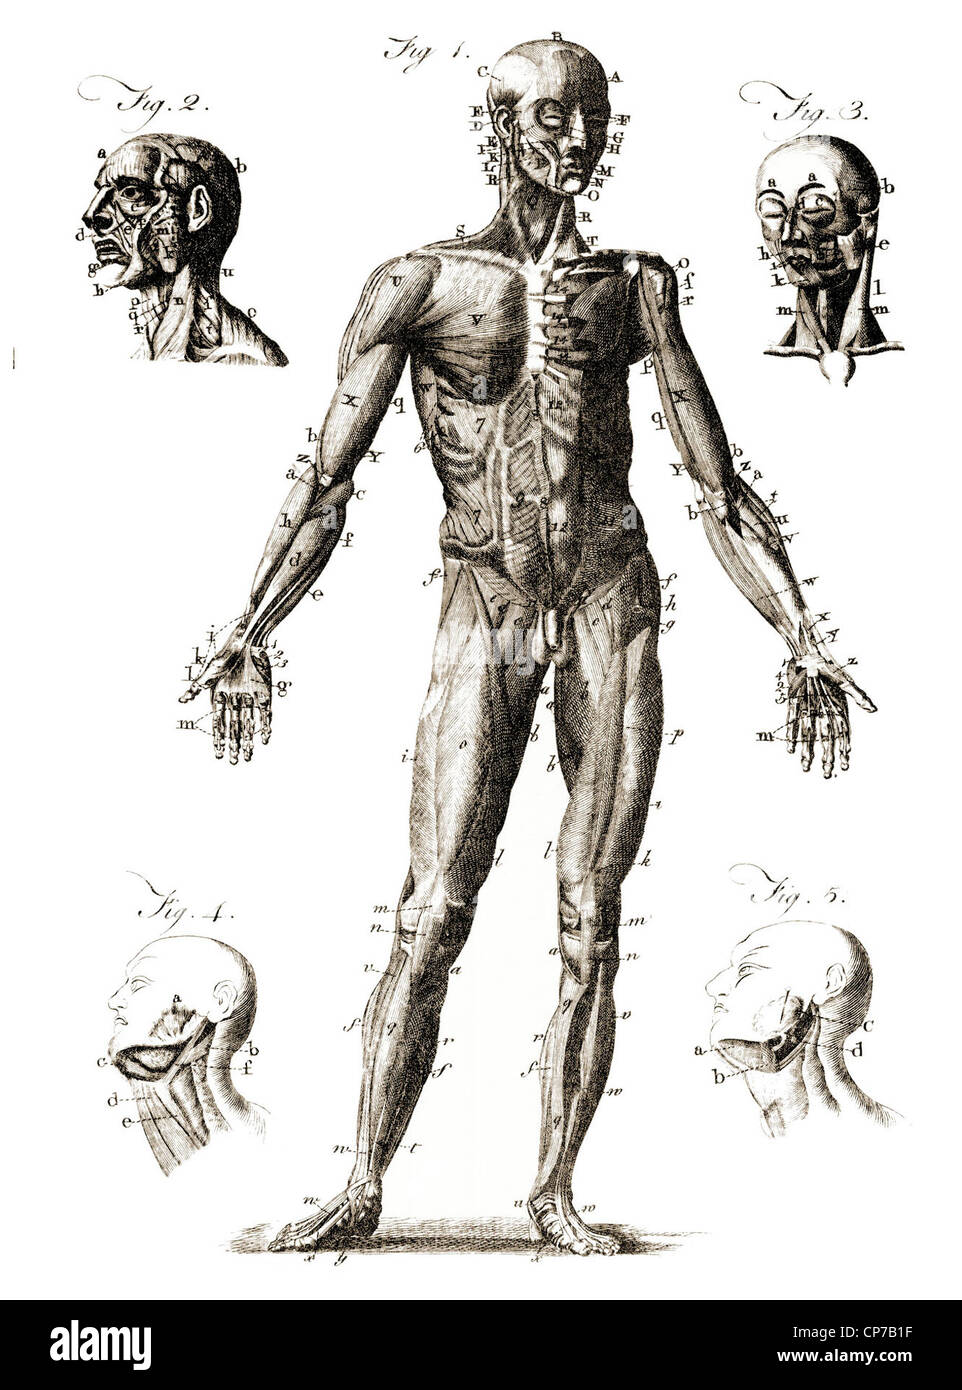 Diagram showing labeled human anatomy. Published by unknown engraver in Encyclopedia Britannica, 1771. - Stock Image